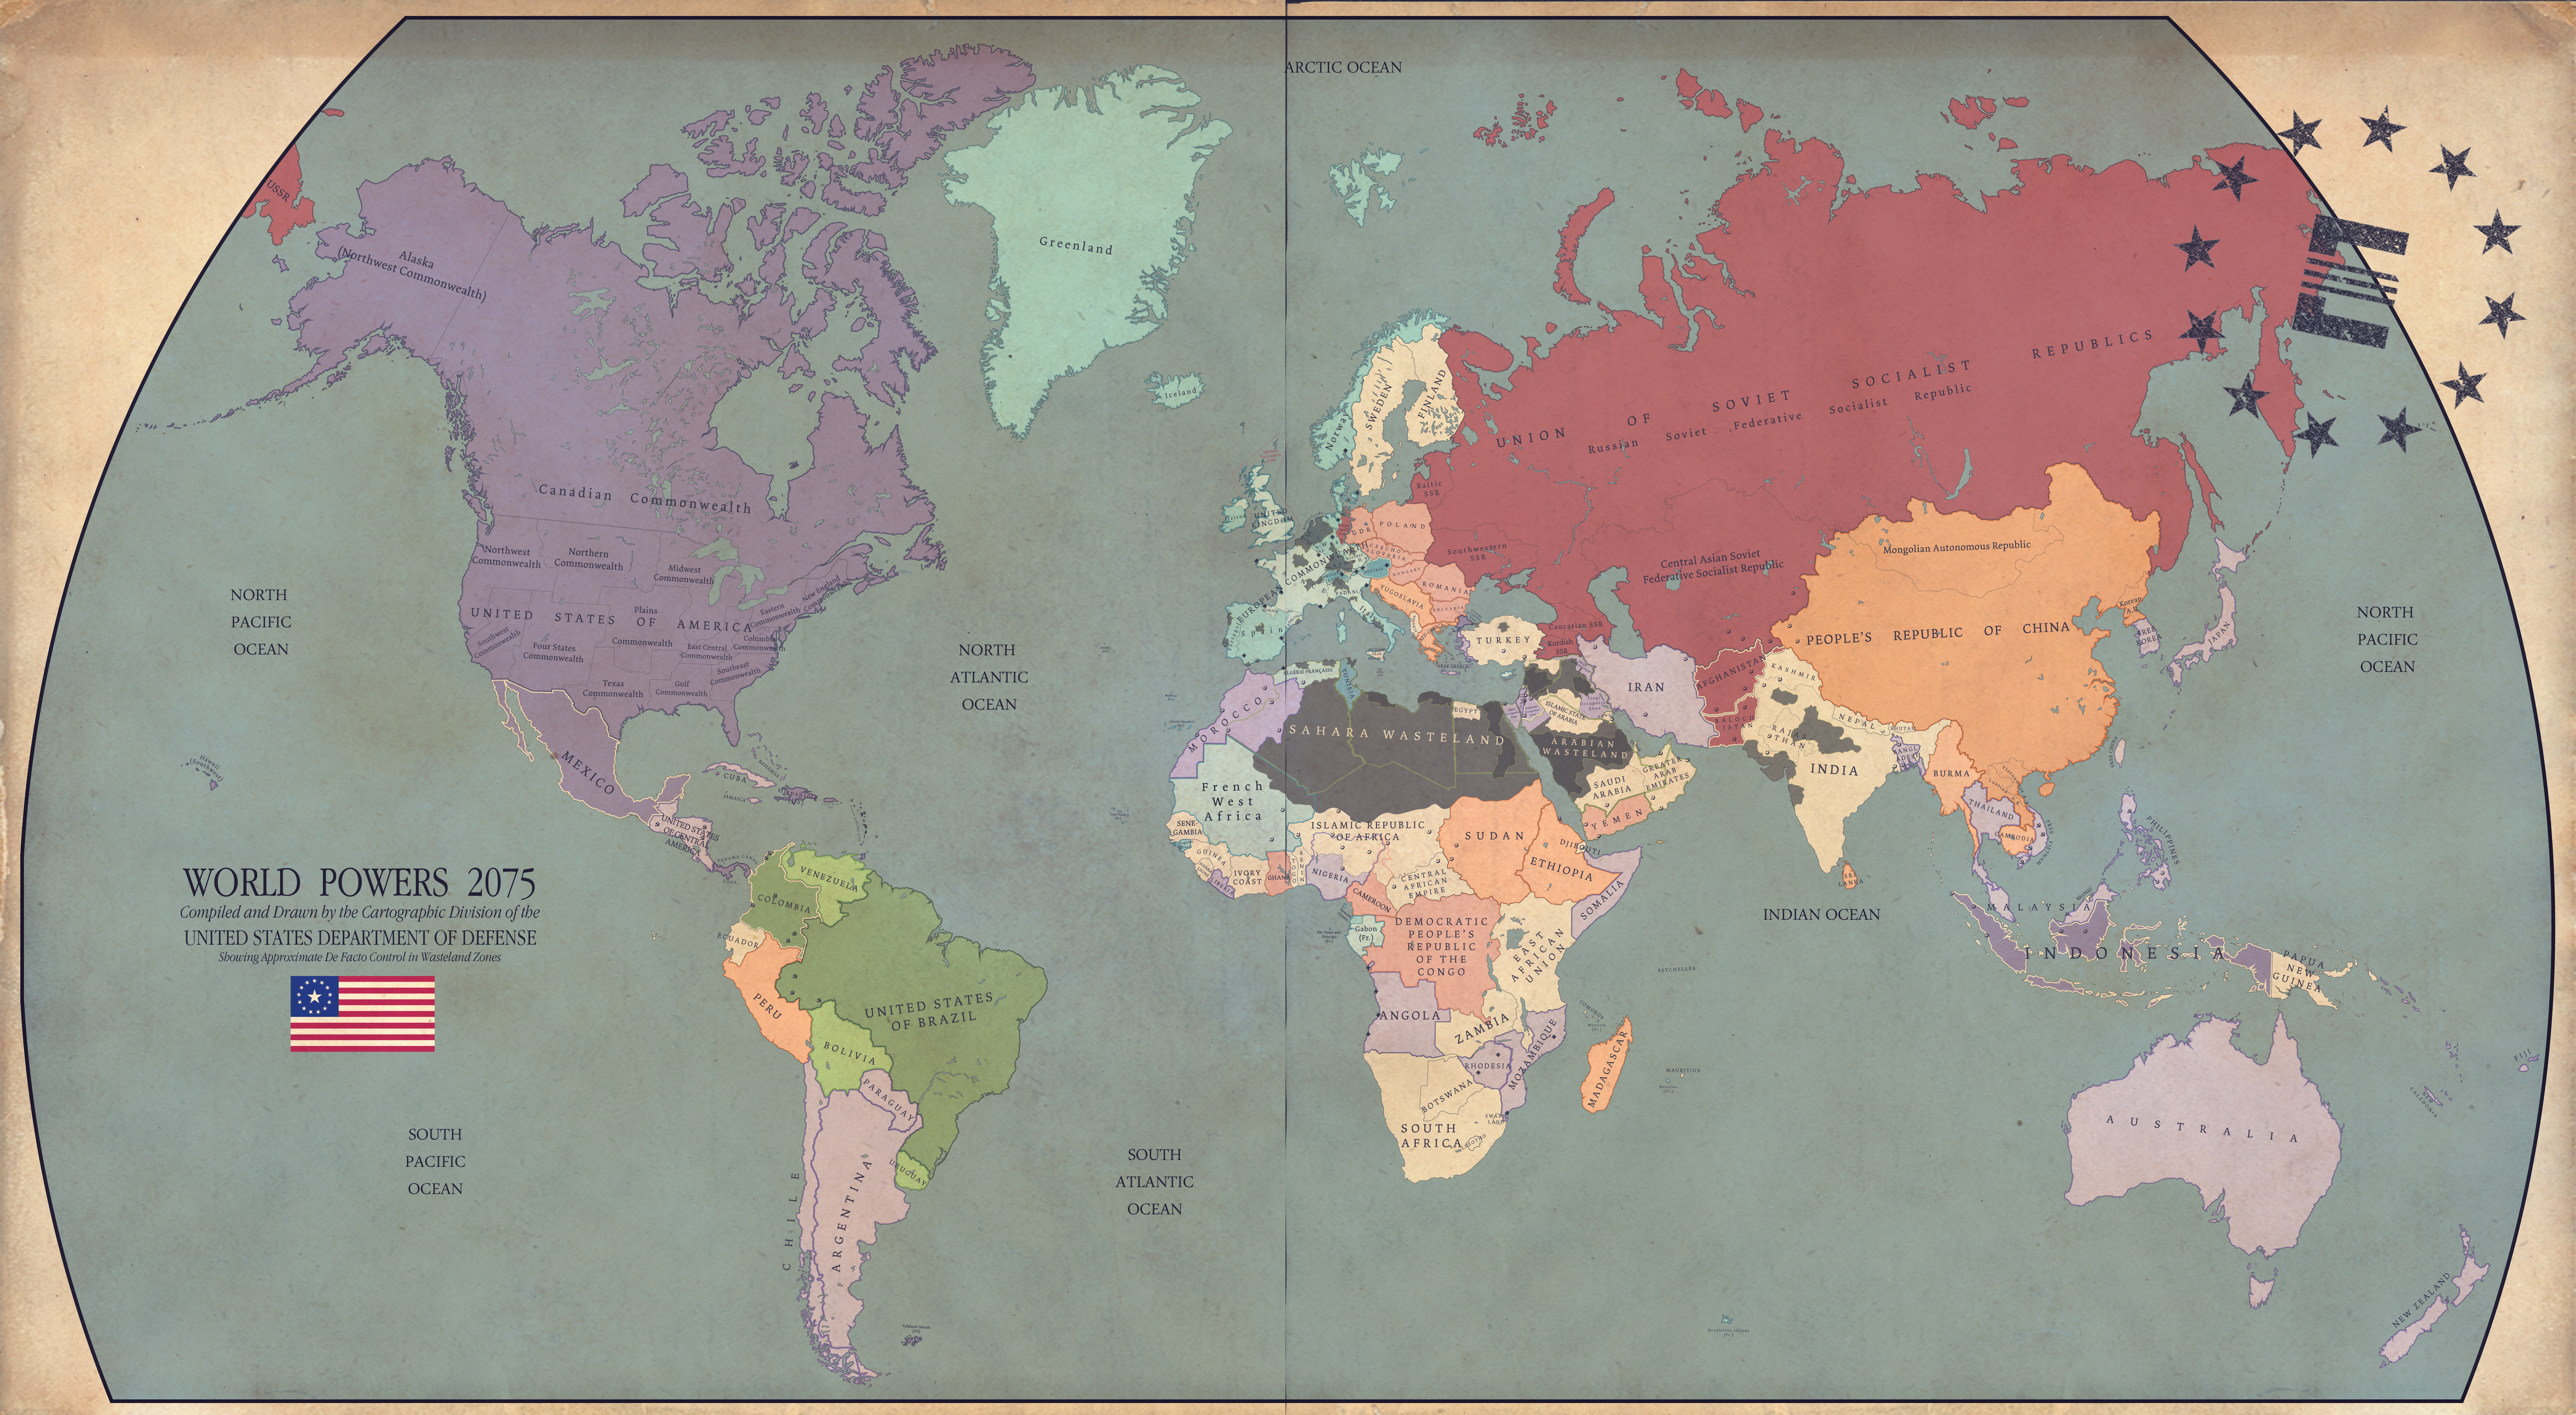 War Never Changes By RvBOMally On DeviantArt - Fallout game map of us